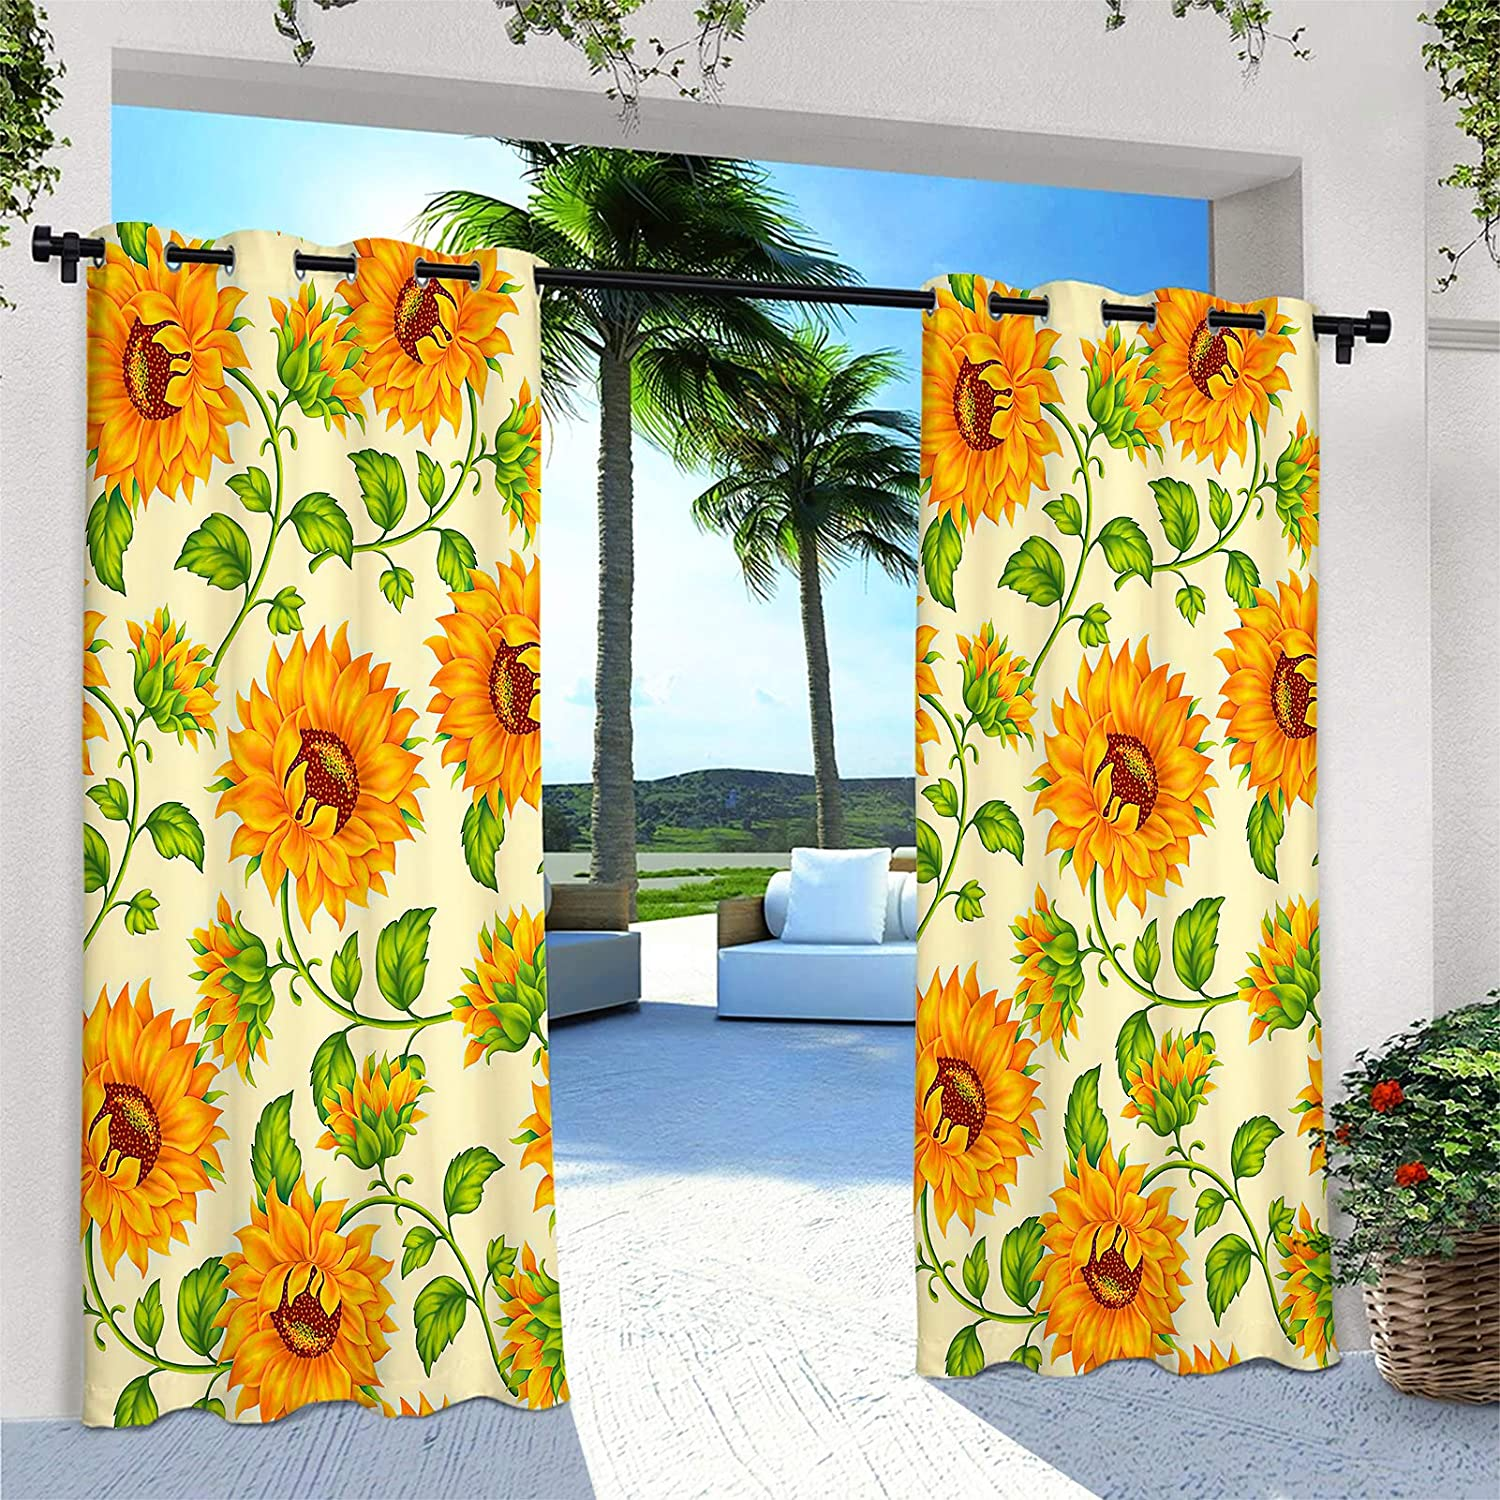 ANHOPE Outdoor Curtains for Patio Ranking TOP10 Cur Waterproof Window Popular products Groment